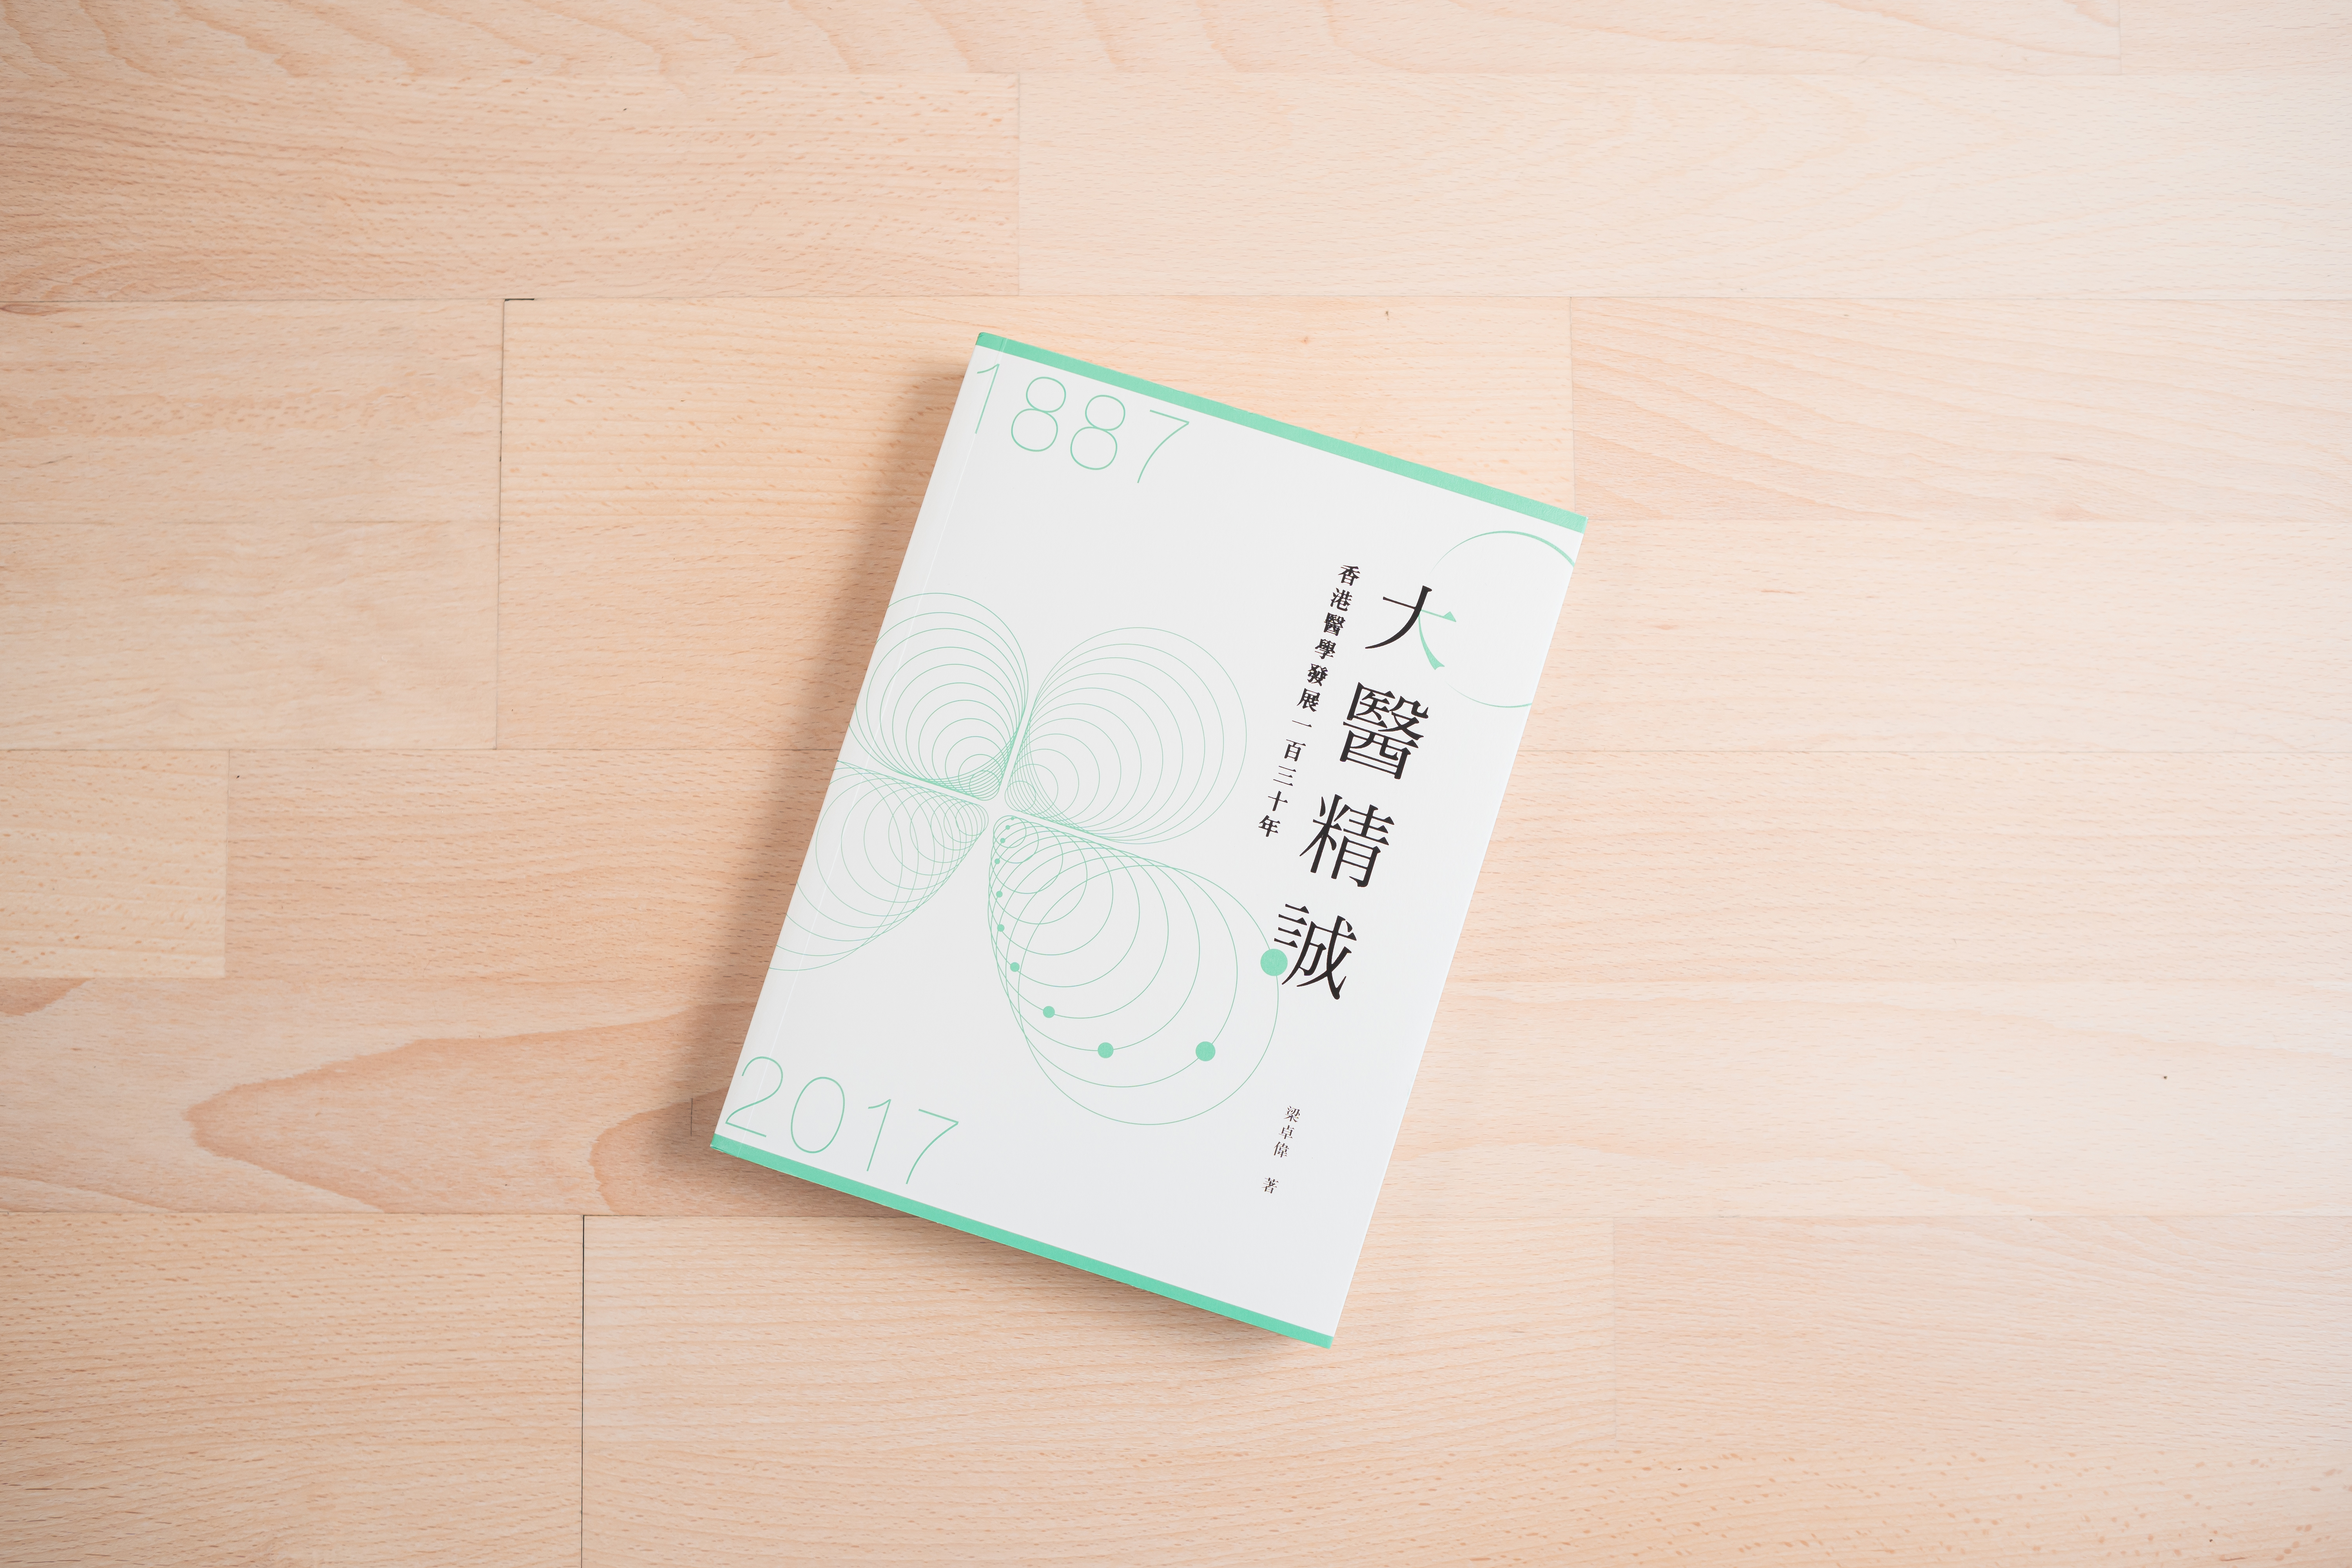 大醫精誠 - Publications by HKUMed (Book in Chinese)